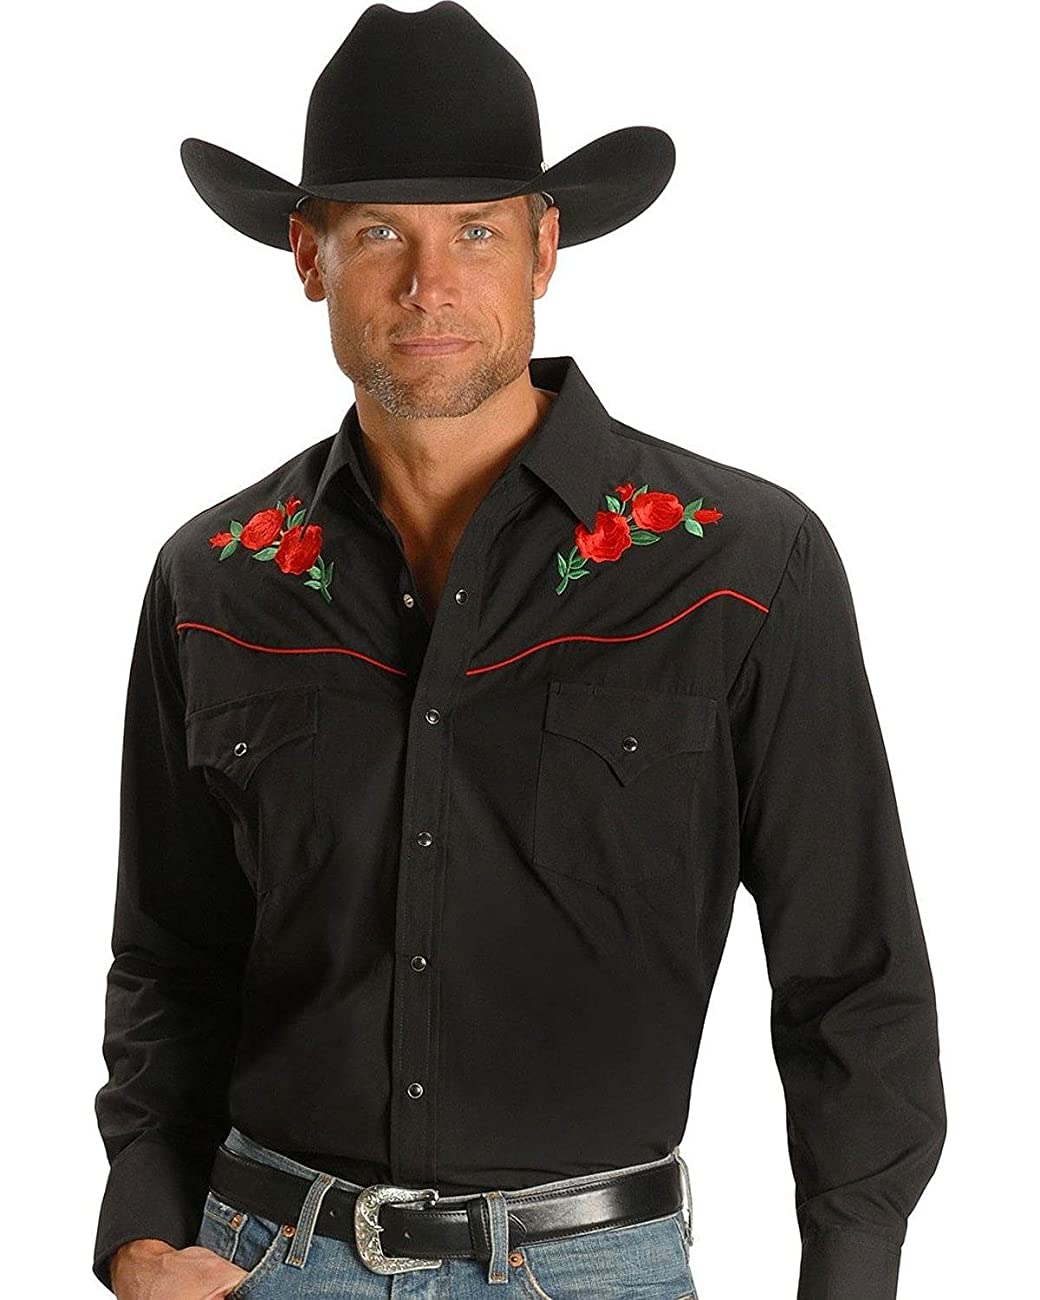 Ely Cattleman Men's Embroidered Rose Design Western Shirt - 15203901-88Blk 0